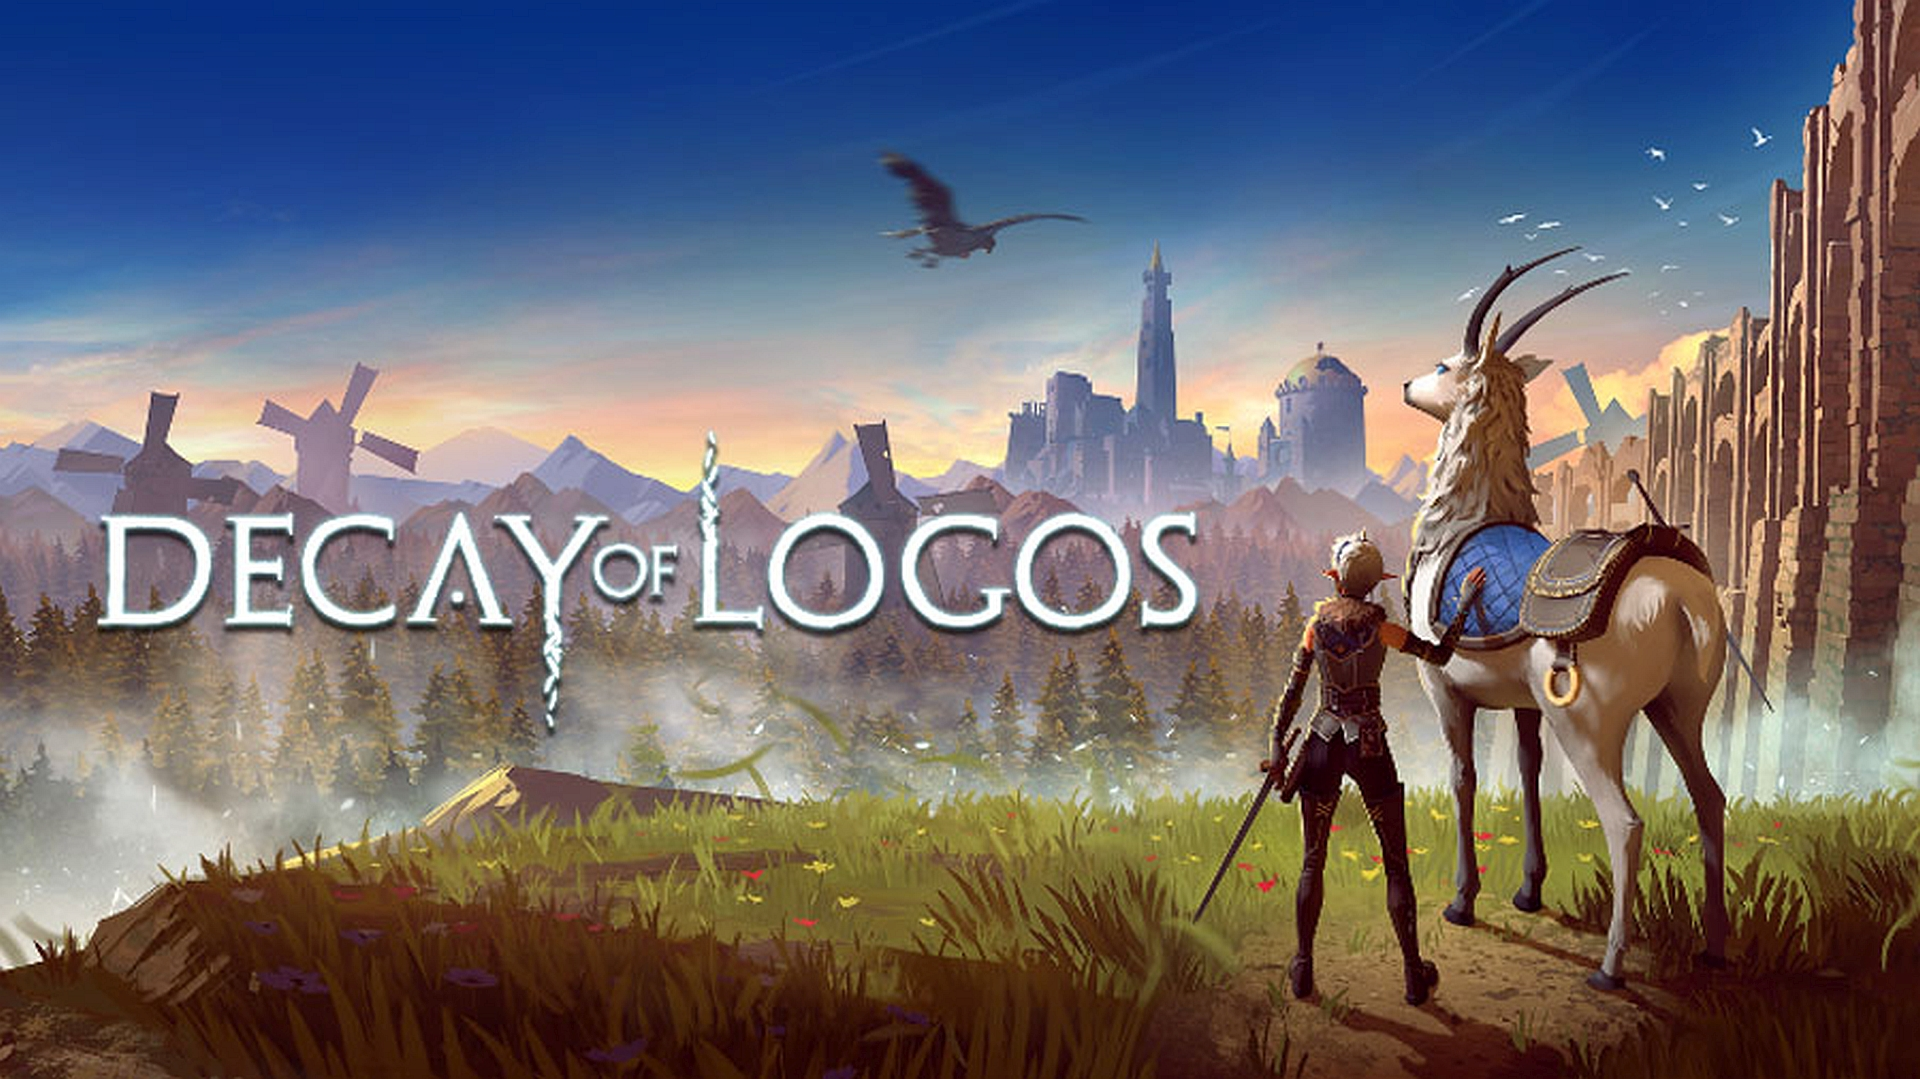 Decay of Logos Looks Like an Indie Crossbreed of Dark Souls and